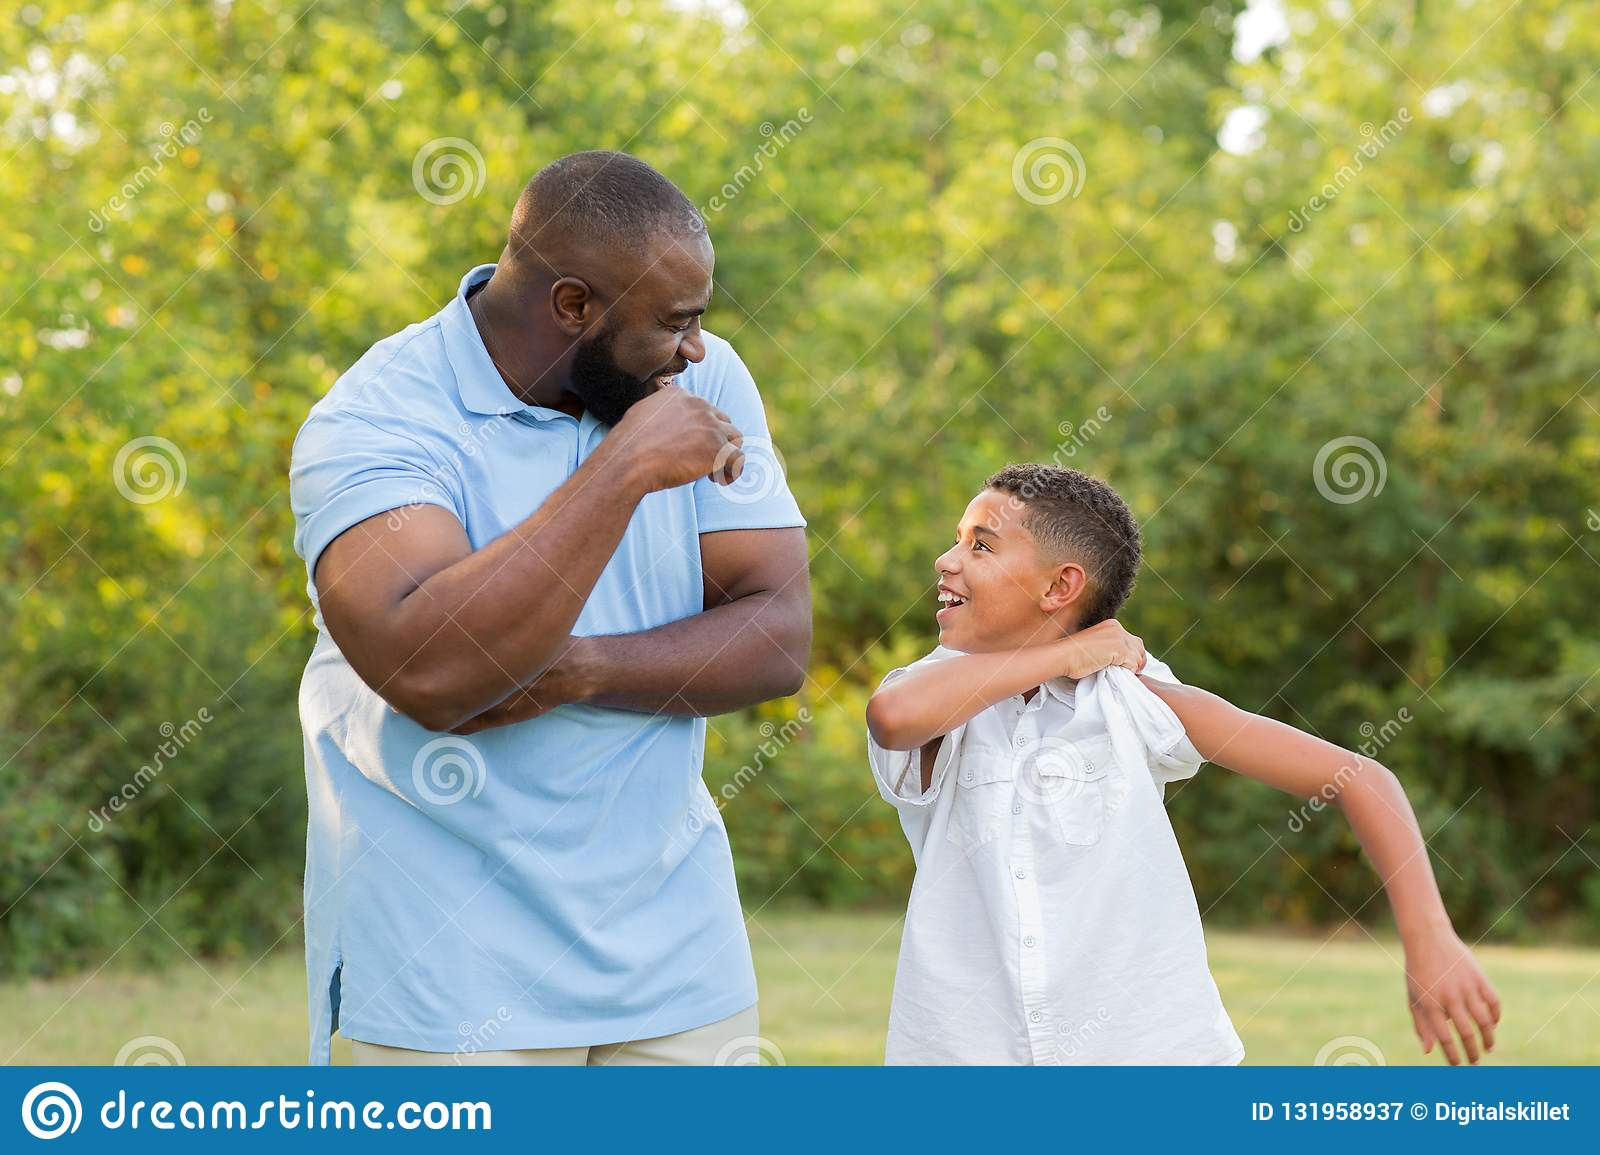 Father and his son laughing and playing at the park.